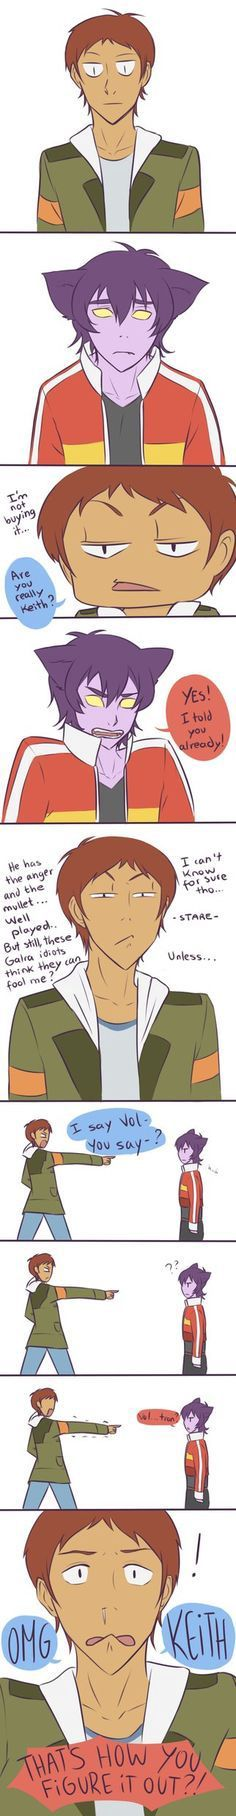 Just some cute comic pictures of Klance None of these pictures are… # Zufällig # amreading # books # wattpad Voltron Memes, Voltron Comics, Voltron Fanart, Form Voltron, Voltron Klance, Voltron Paladins, Voltron Ships, Klance Comics, Cute Comics